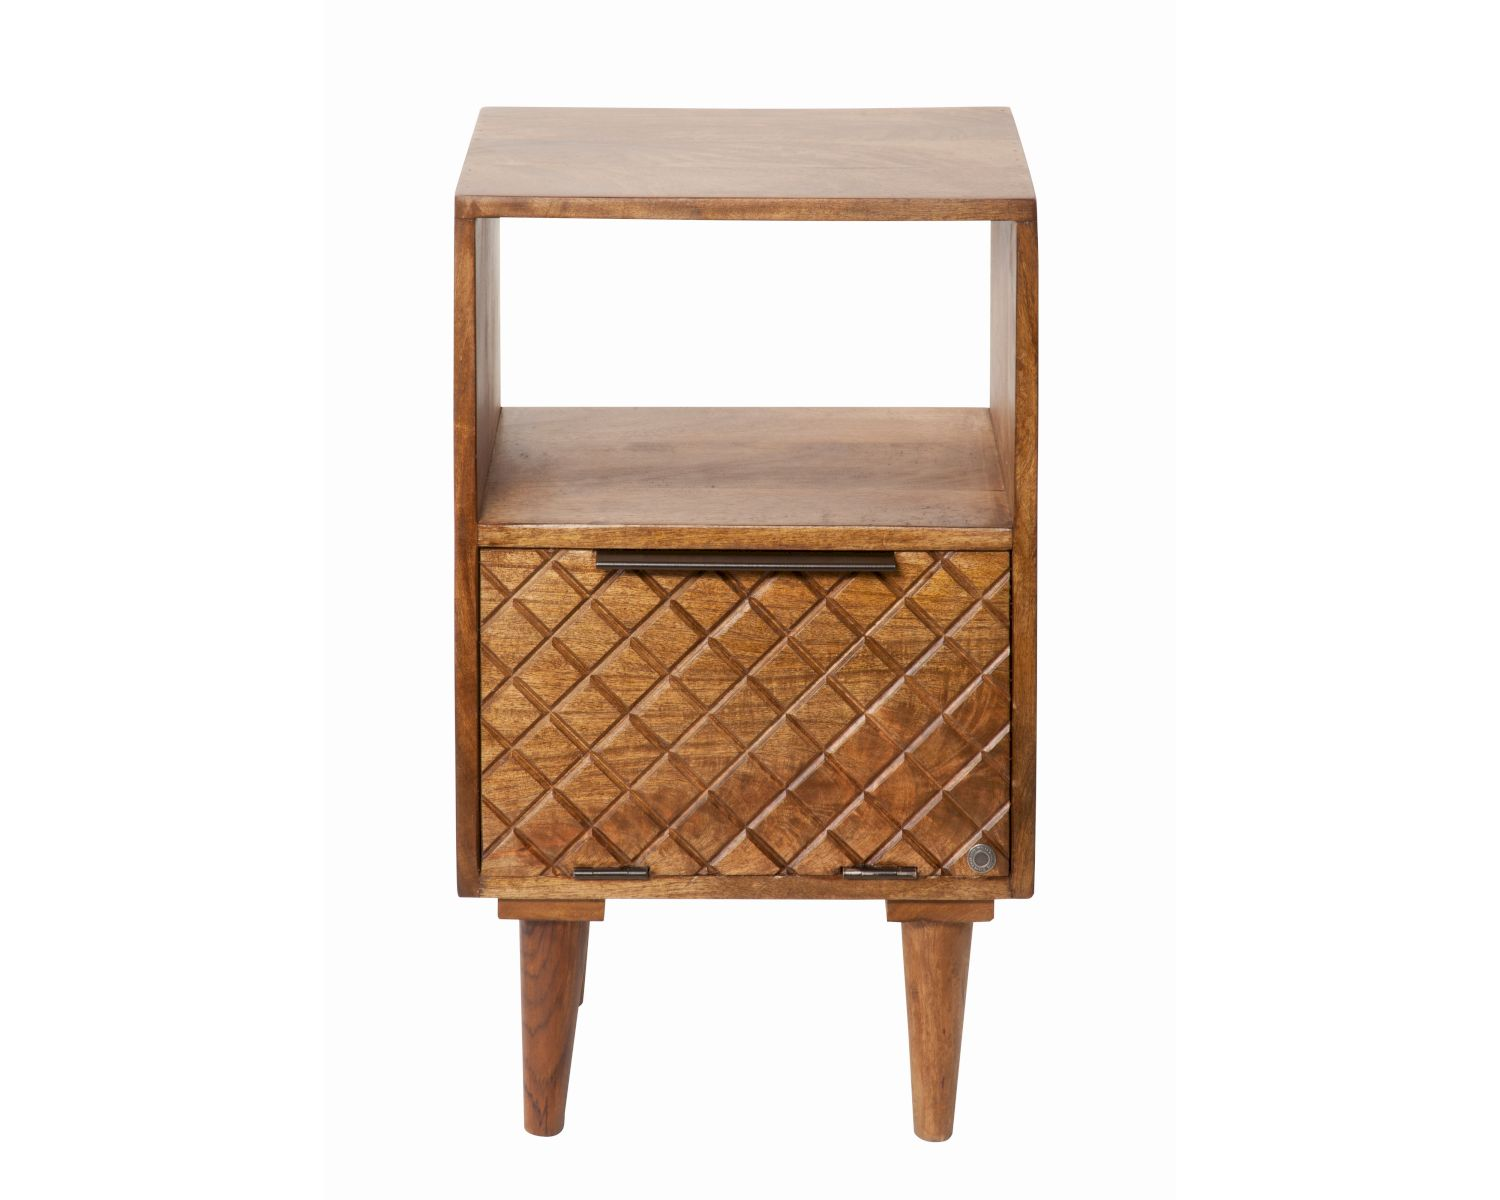 SIT Tom Tailor Mangoholz Kommode B 40 x H 67 x T 29 cm